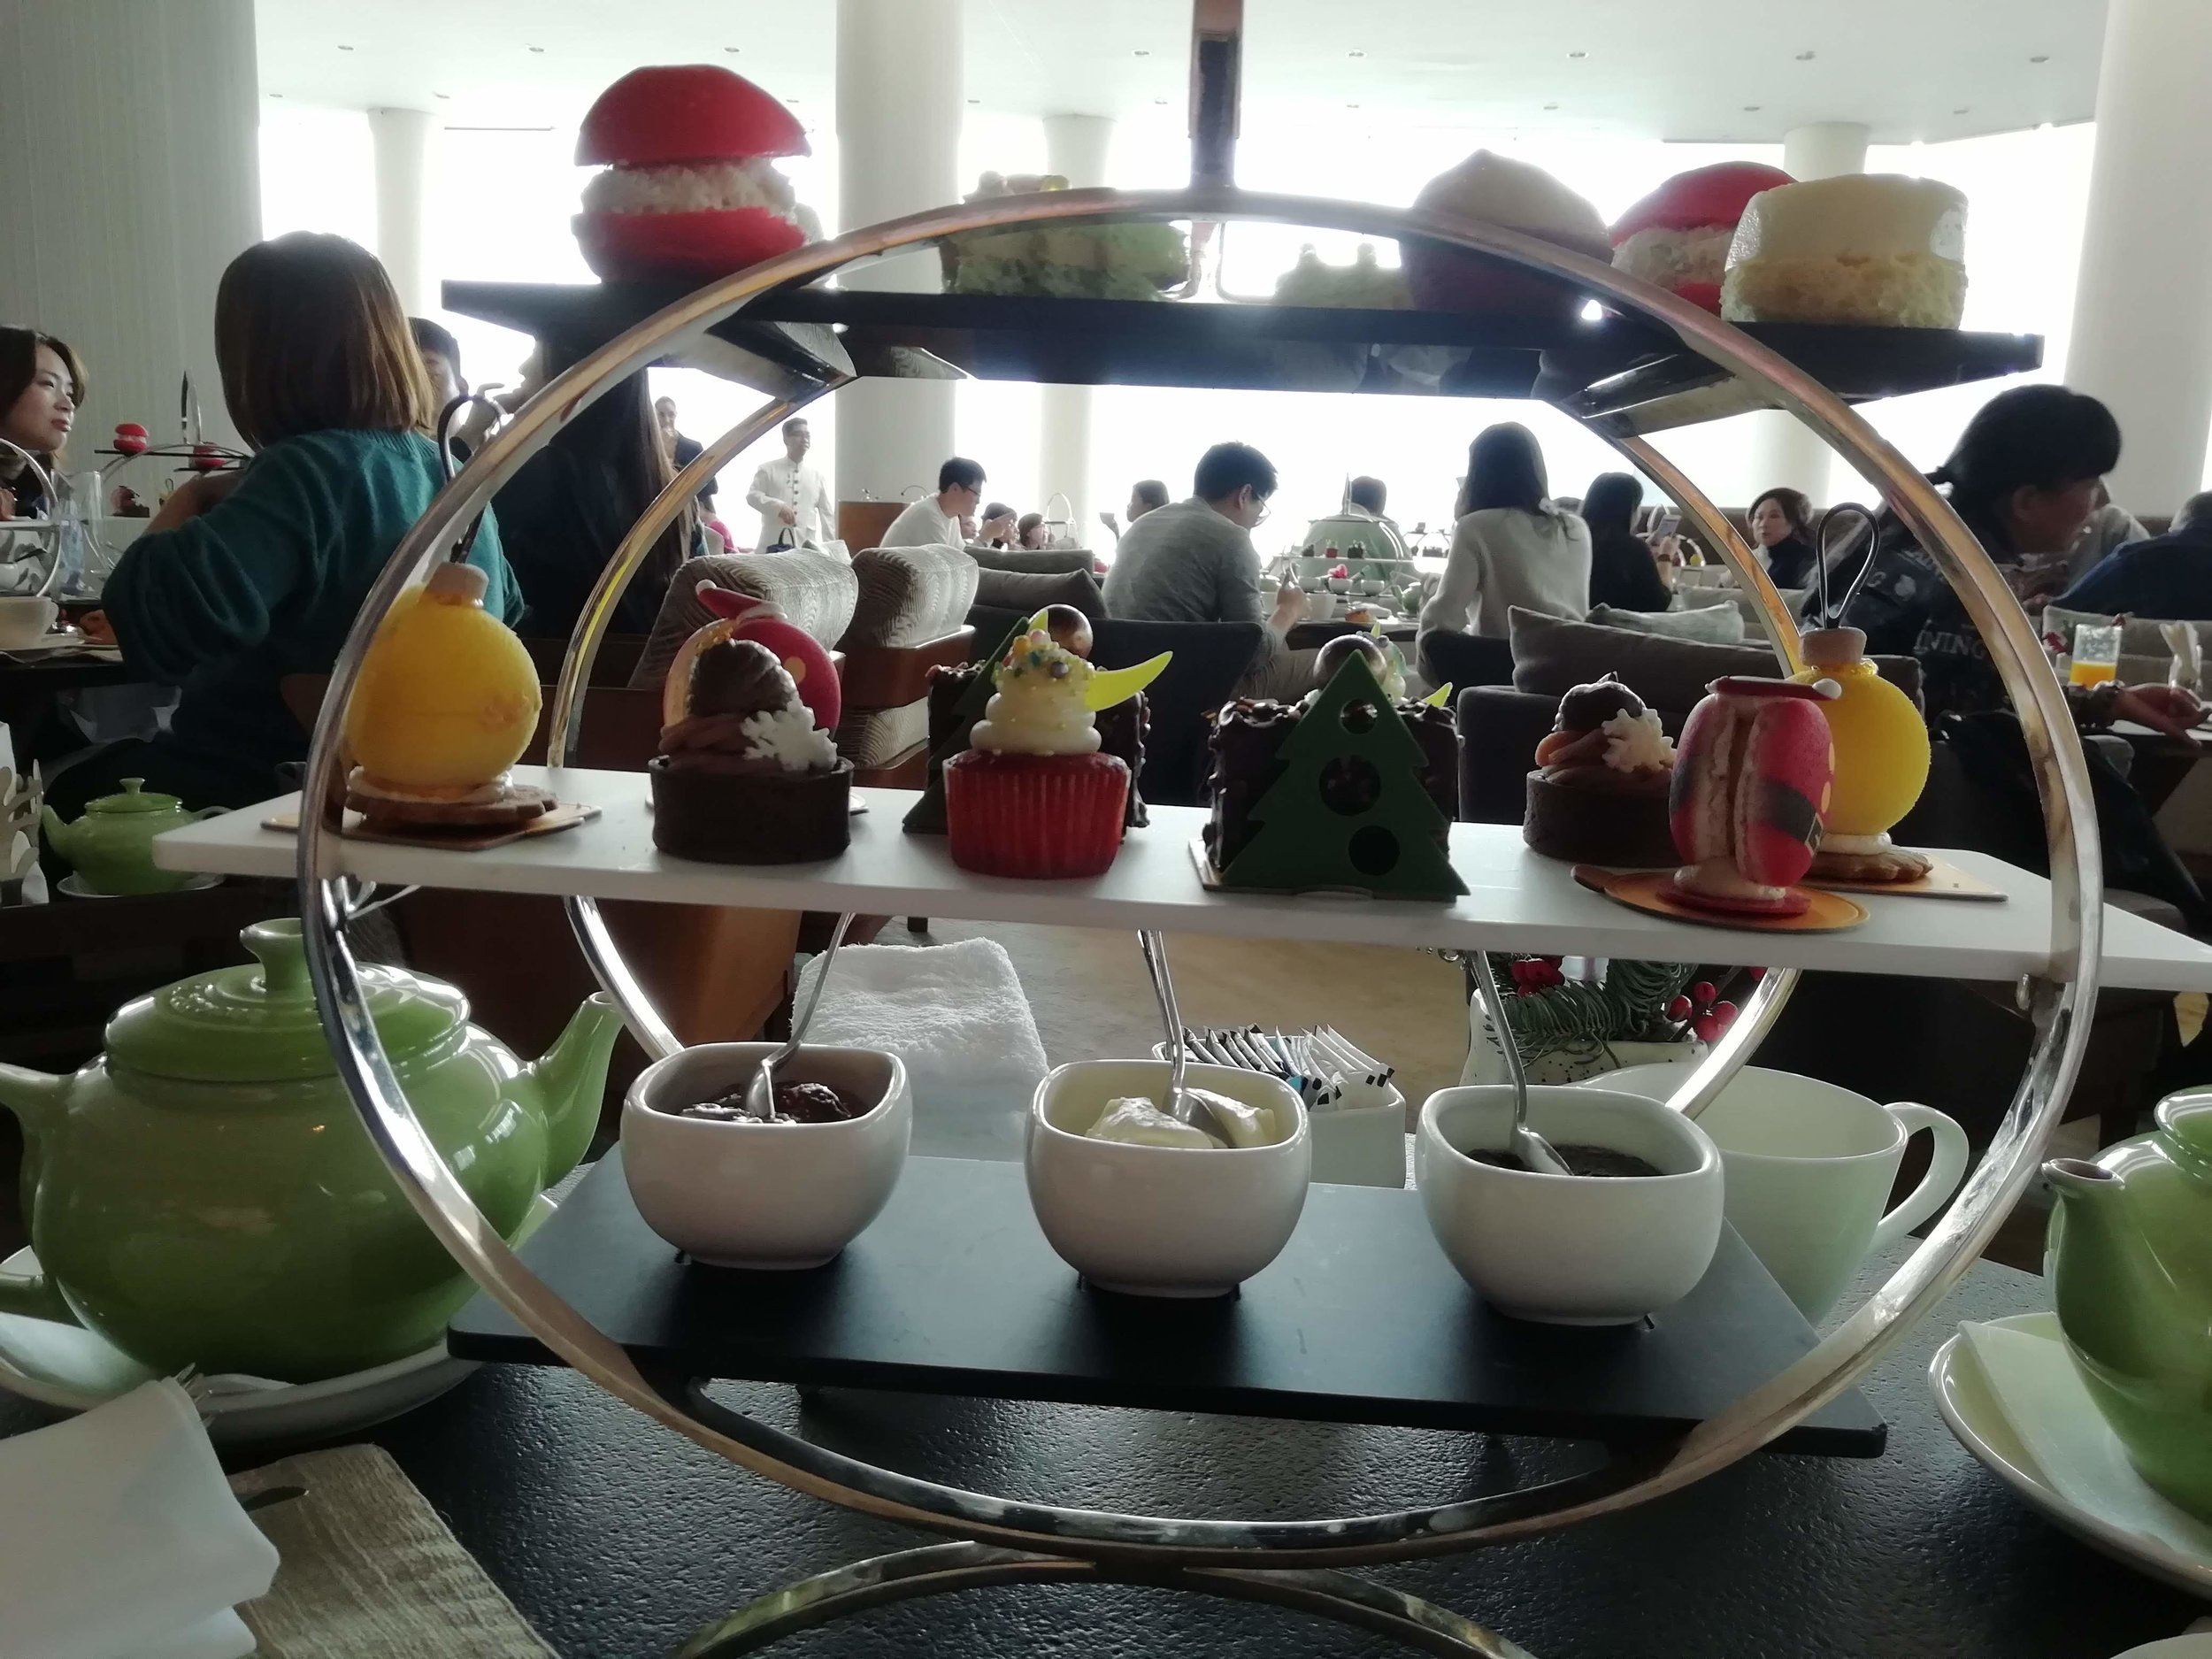 Afternoon Tea at the Intercontinental